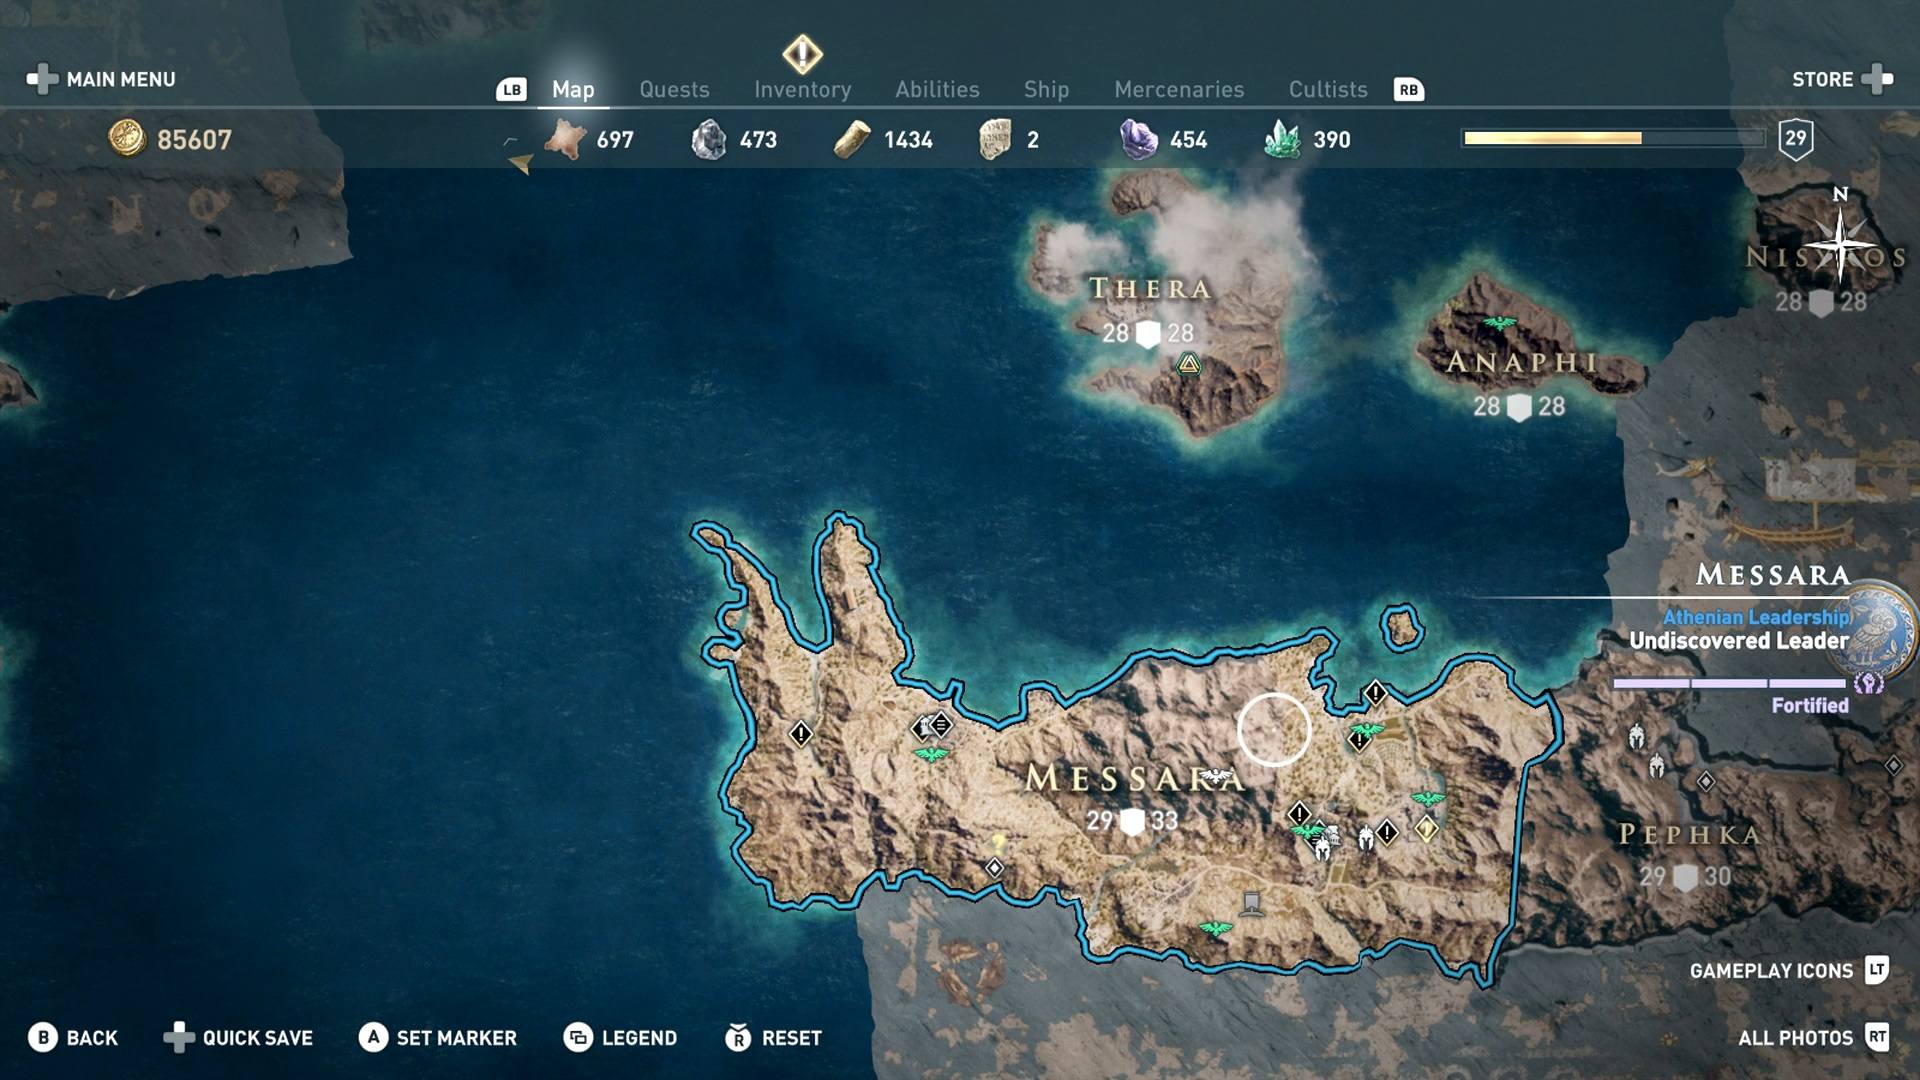 Assassin's Creed Odyssey Messara: how to complete the side quests